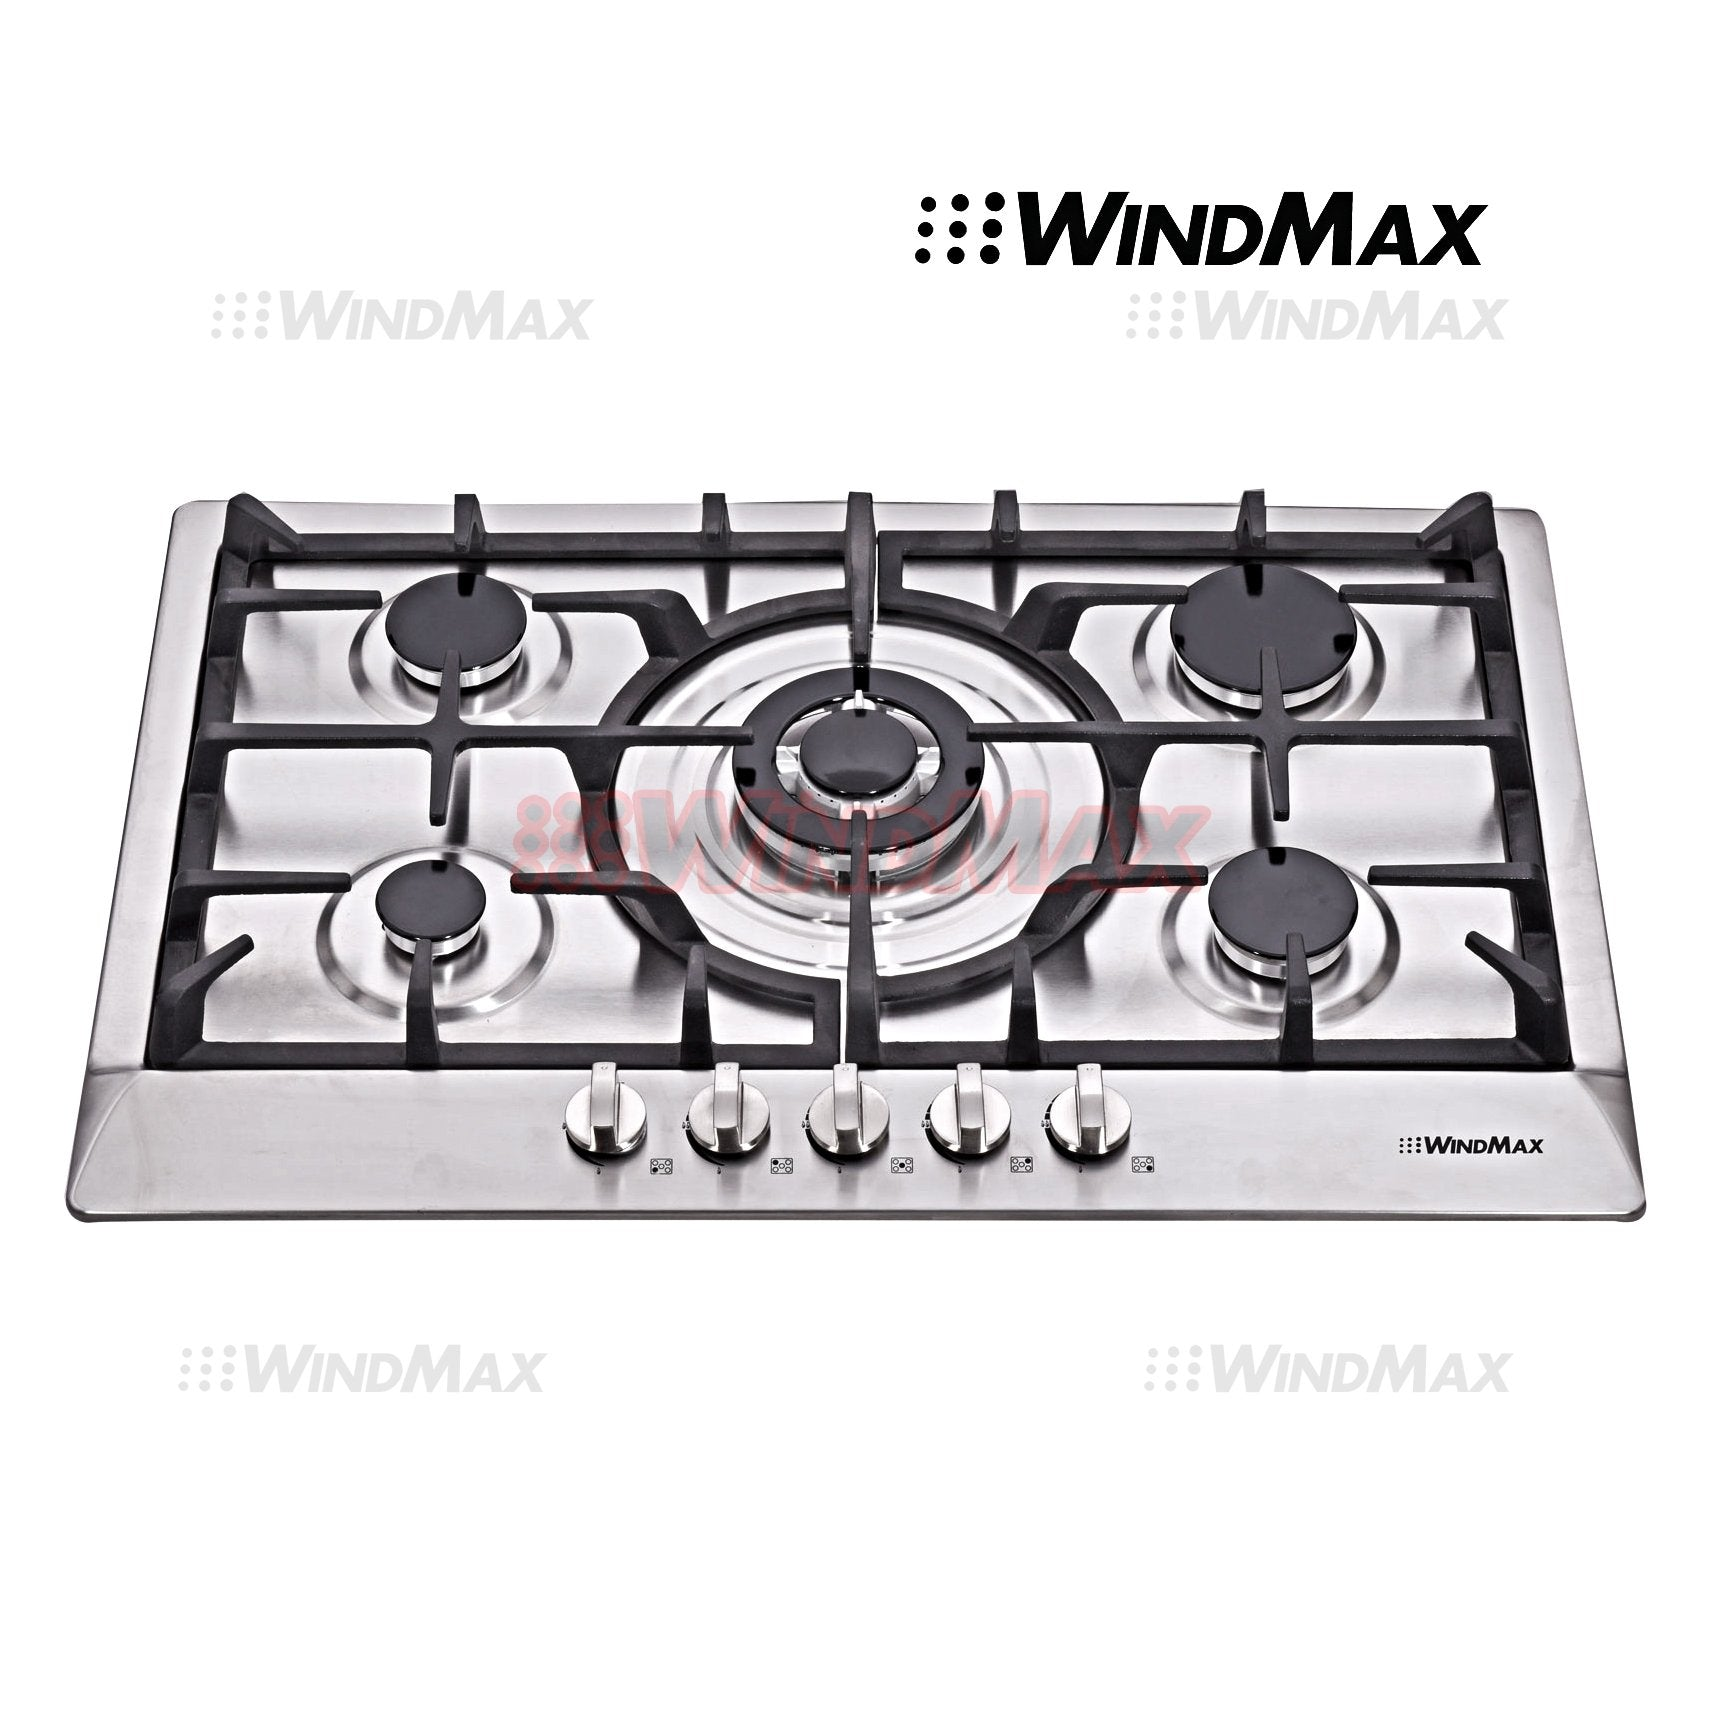 Windmax New 30 inch Stainless Steel 5 Burner Built-In Stoves NG LPG Gas Cooktop Cooker